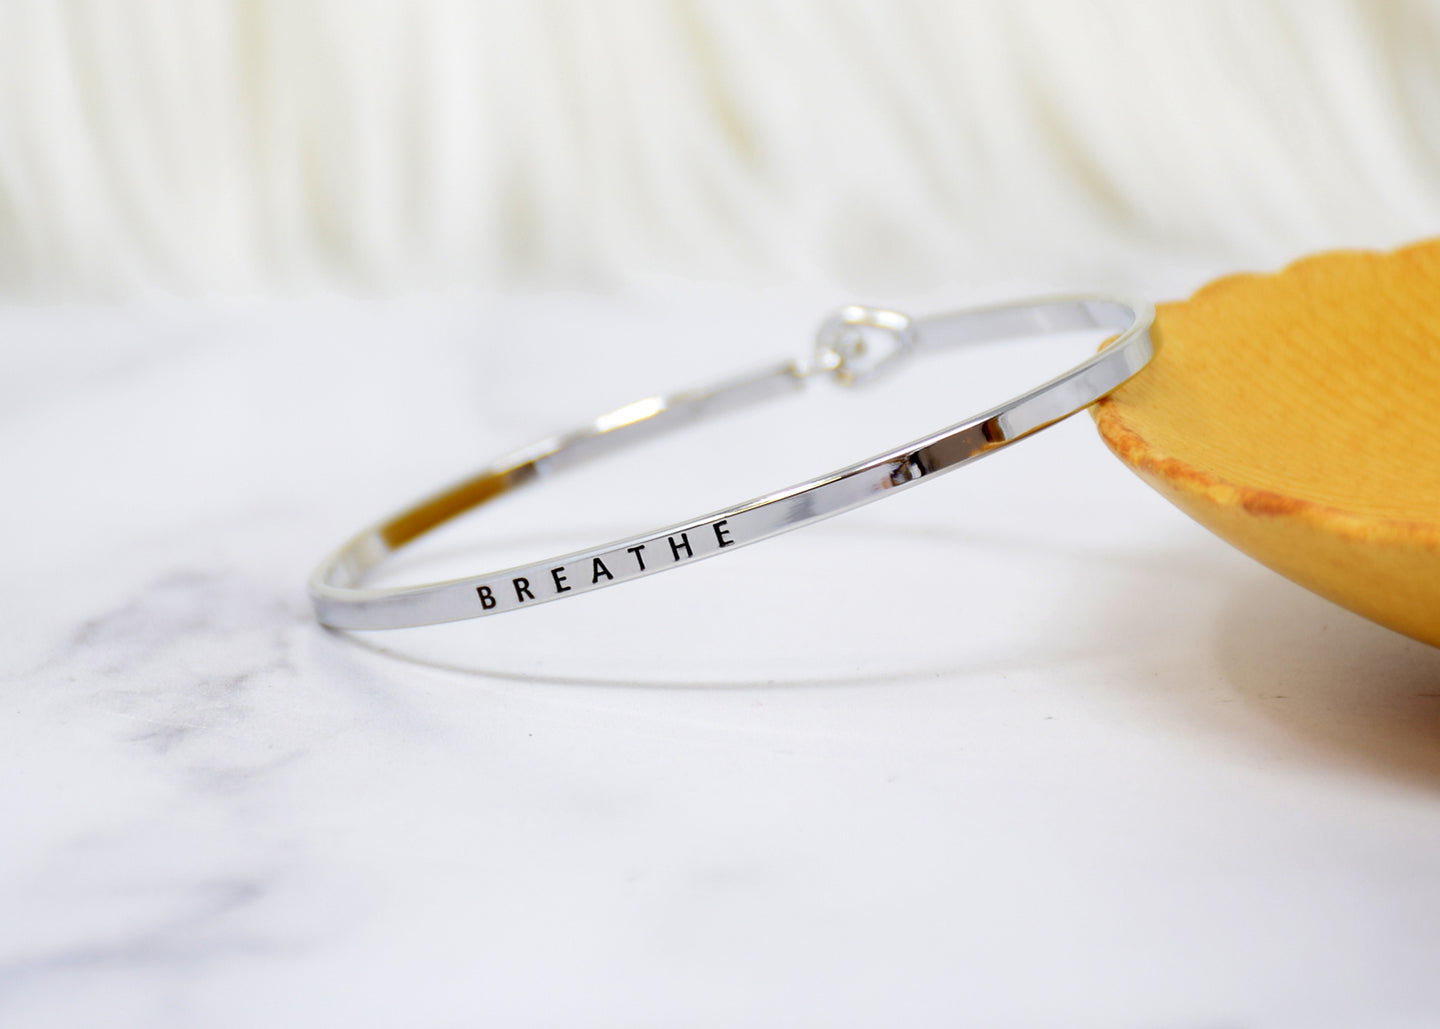 Breathe - Bracelet Bangle with Message for Women Girl Daughter Wife Holiday Anniversary Special Gift